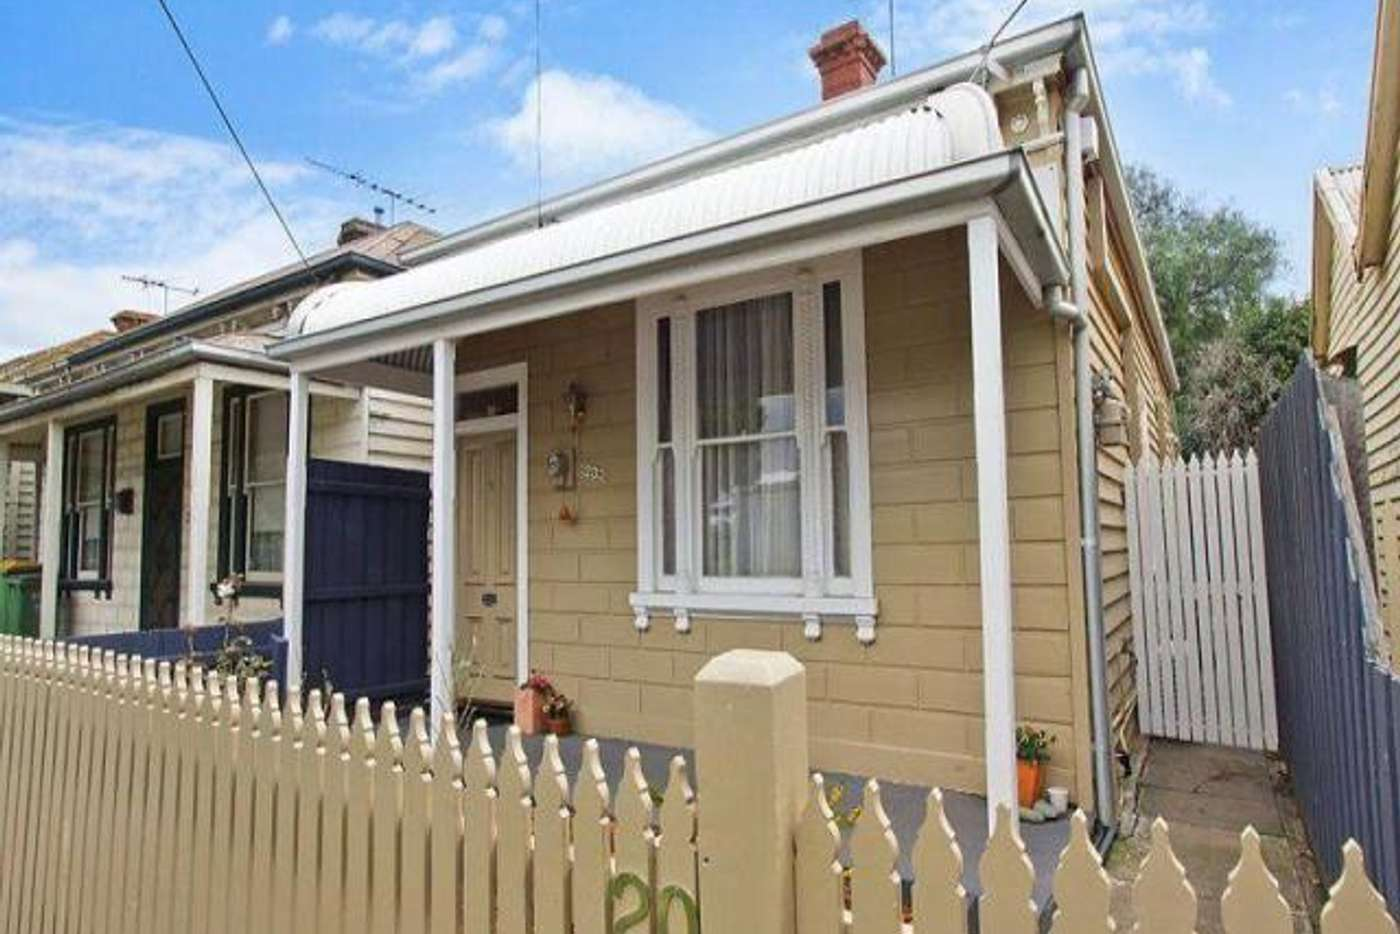 Main view of Homely house listing, 20 Perry Street, Seddon VIC 3011